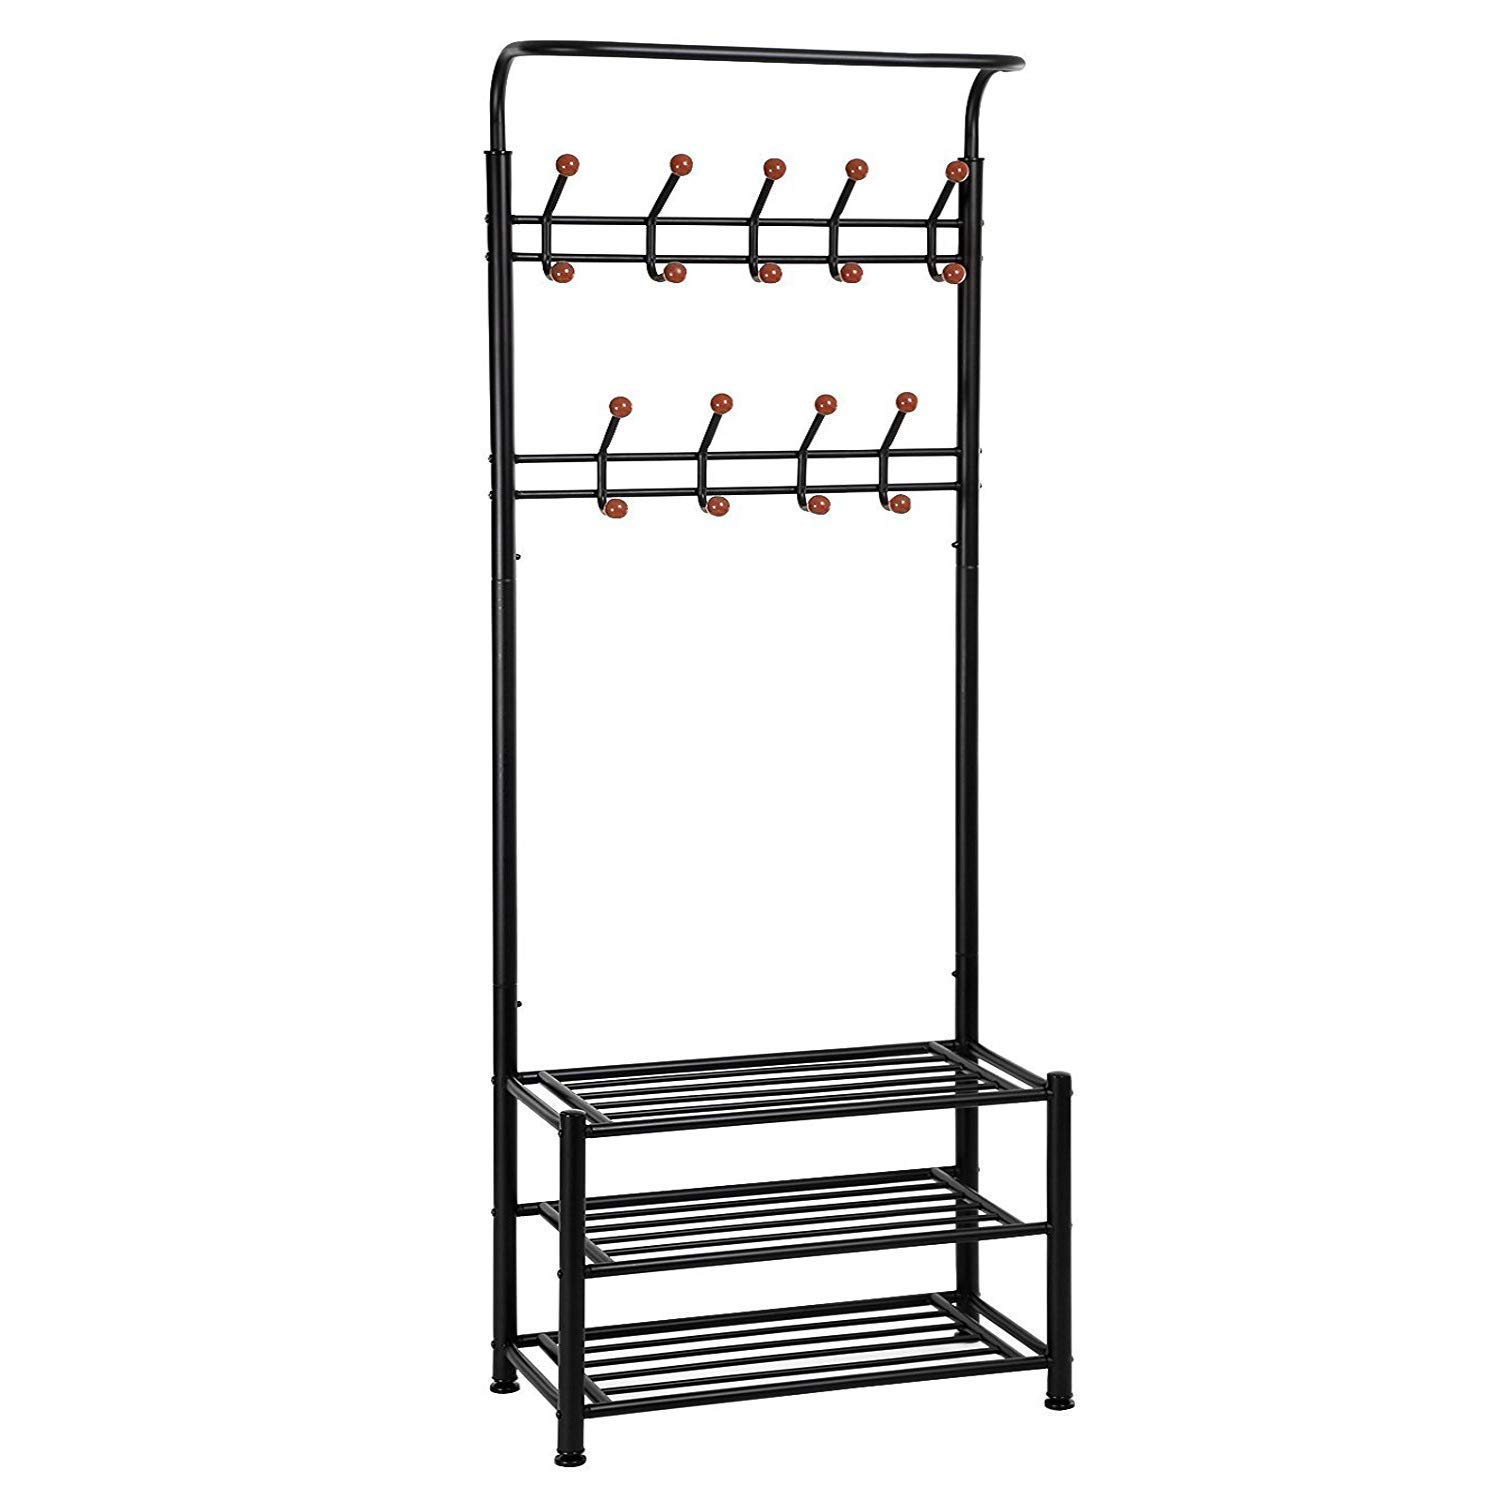 Yaker's collection Metal Entryway Coat Rack with 10 Hooks 2 Shoes Shelf Garment Rack Storage for Coat Hat Umbrella Rack (Black)